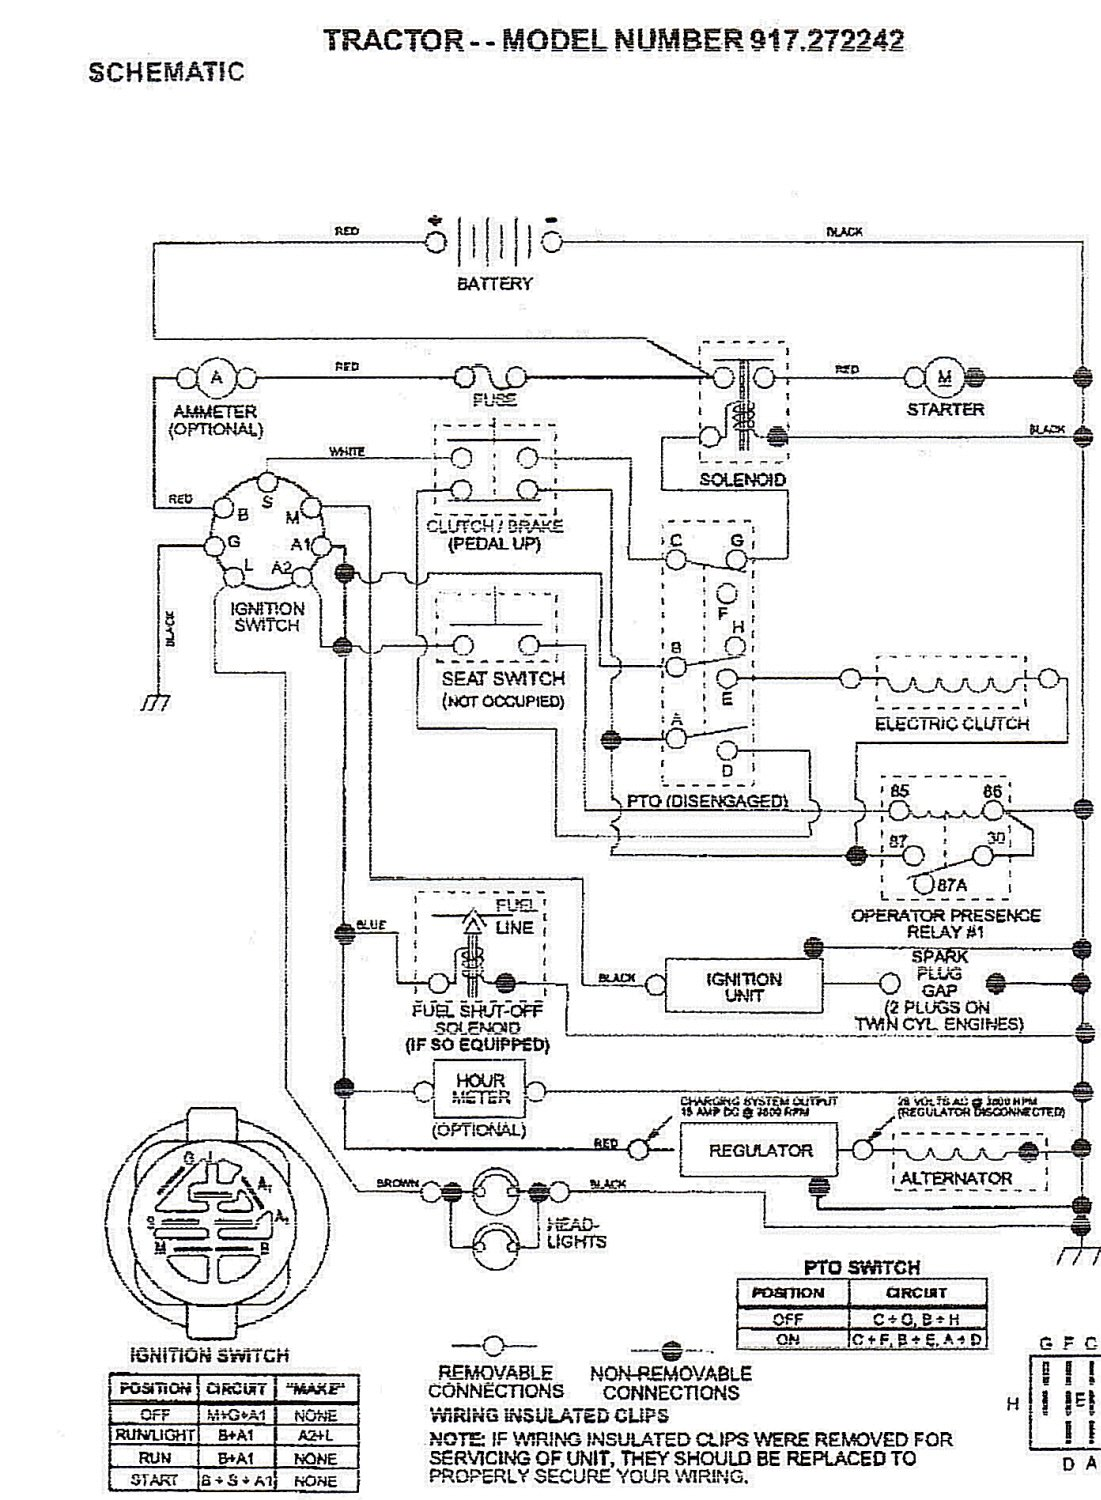 2013 05 22_153549_craftsman_917 272242 briggs vanguard 18 hp wiring diagram wiring diagram simonand  at soozxer.org